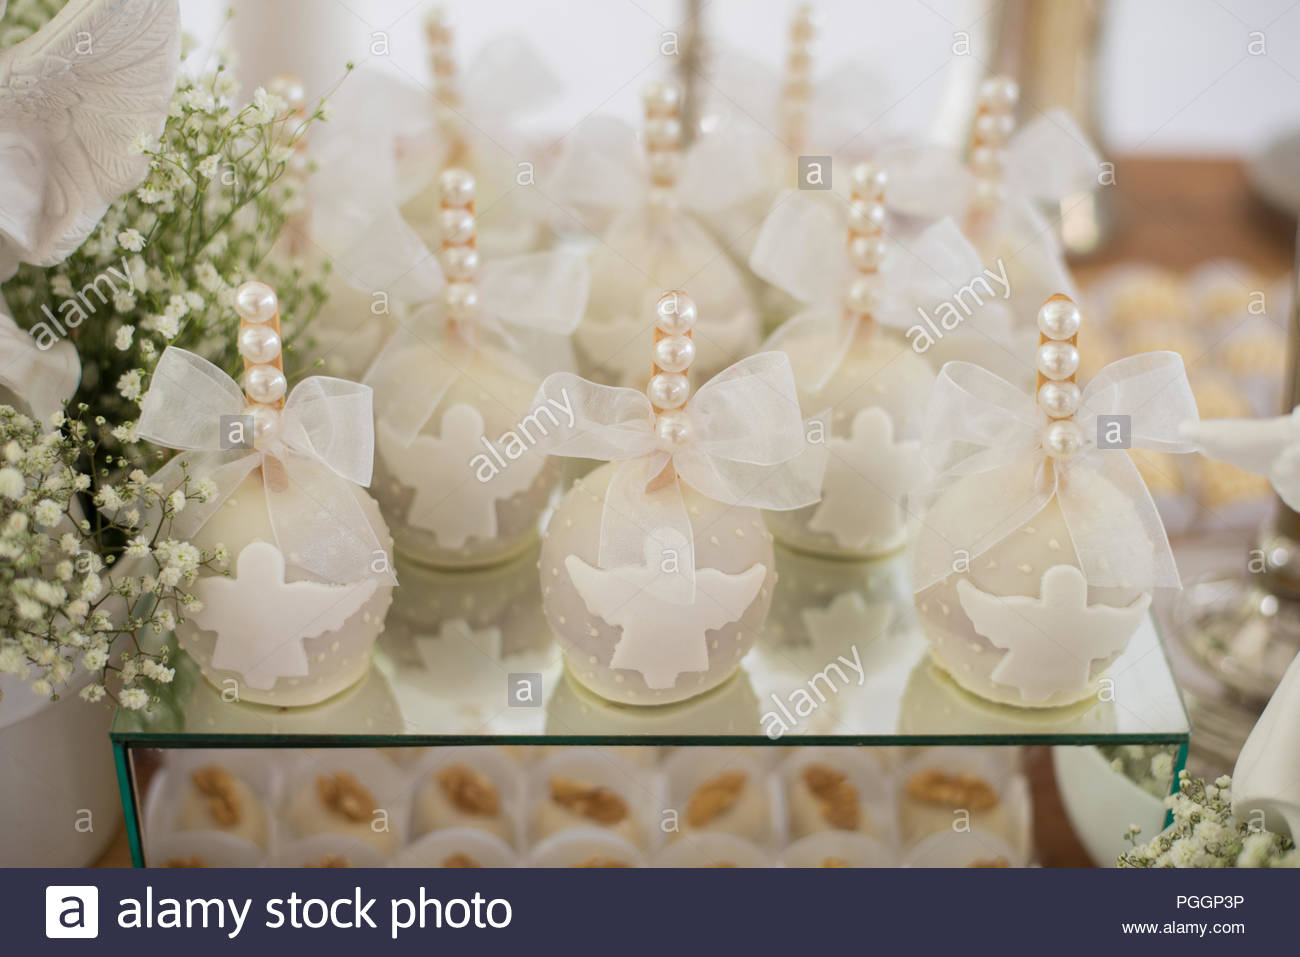 Table decorated with apples - Baptism - Stock Image